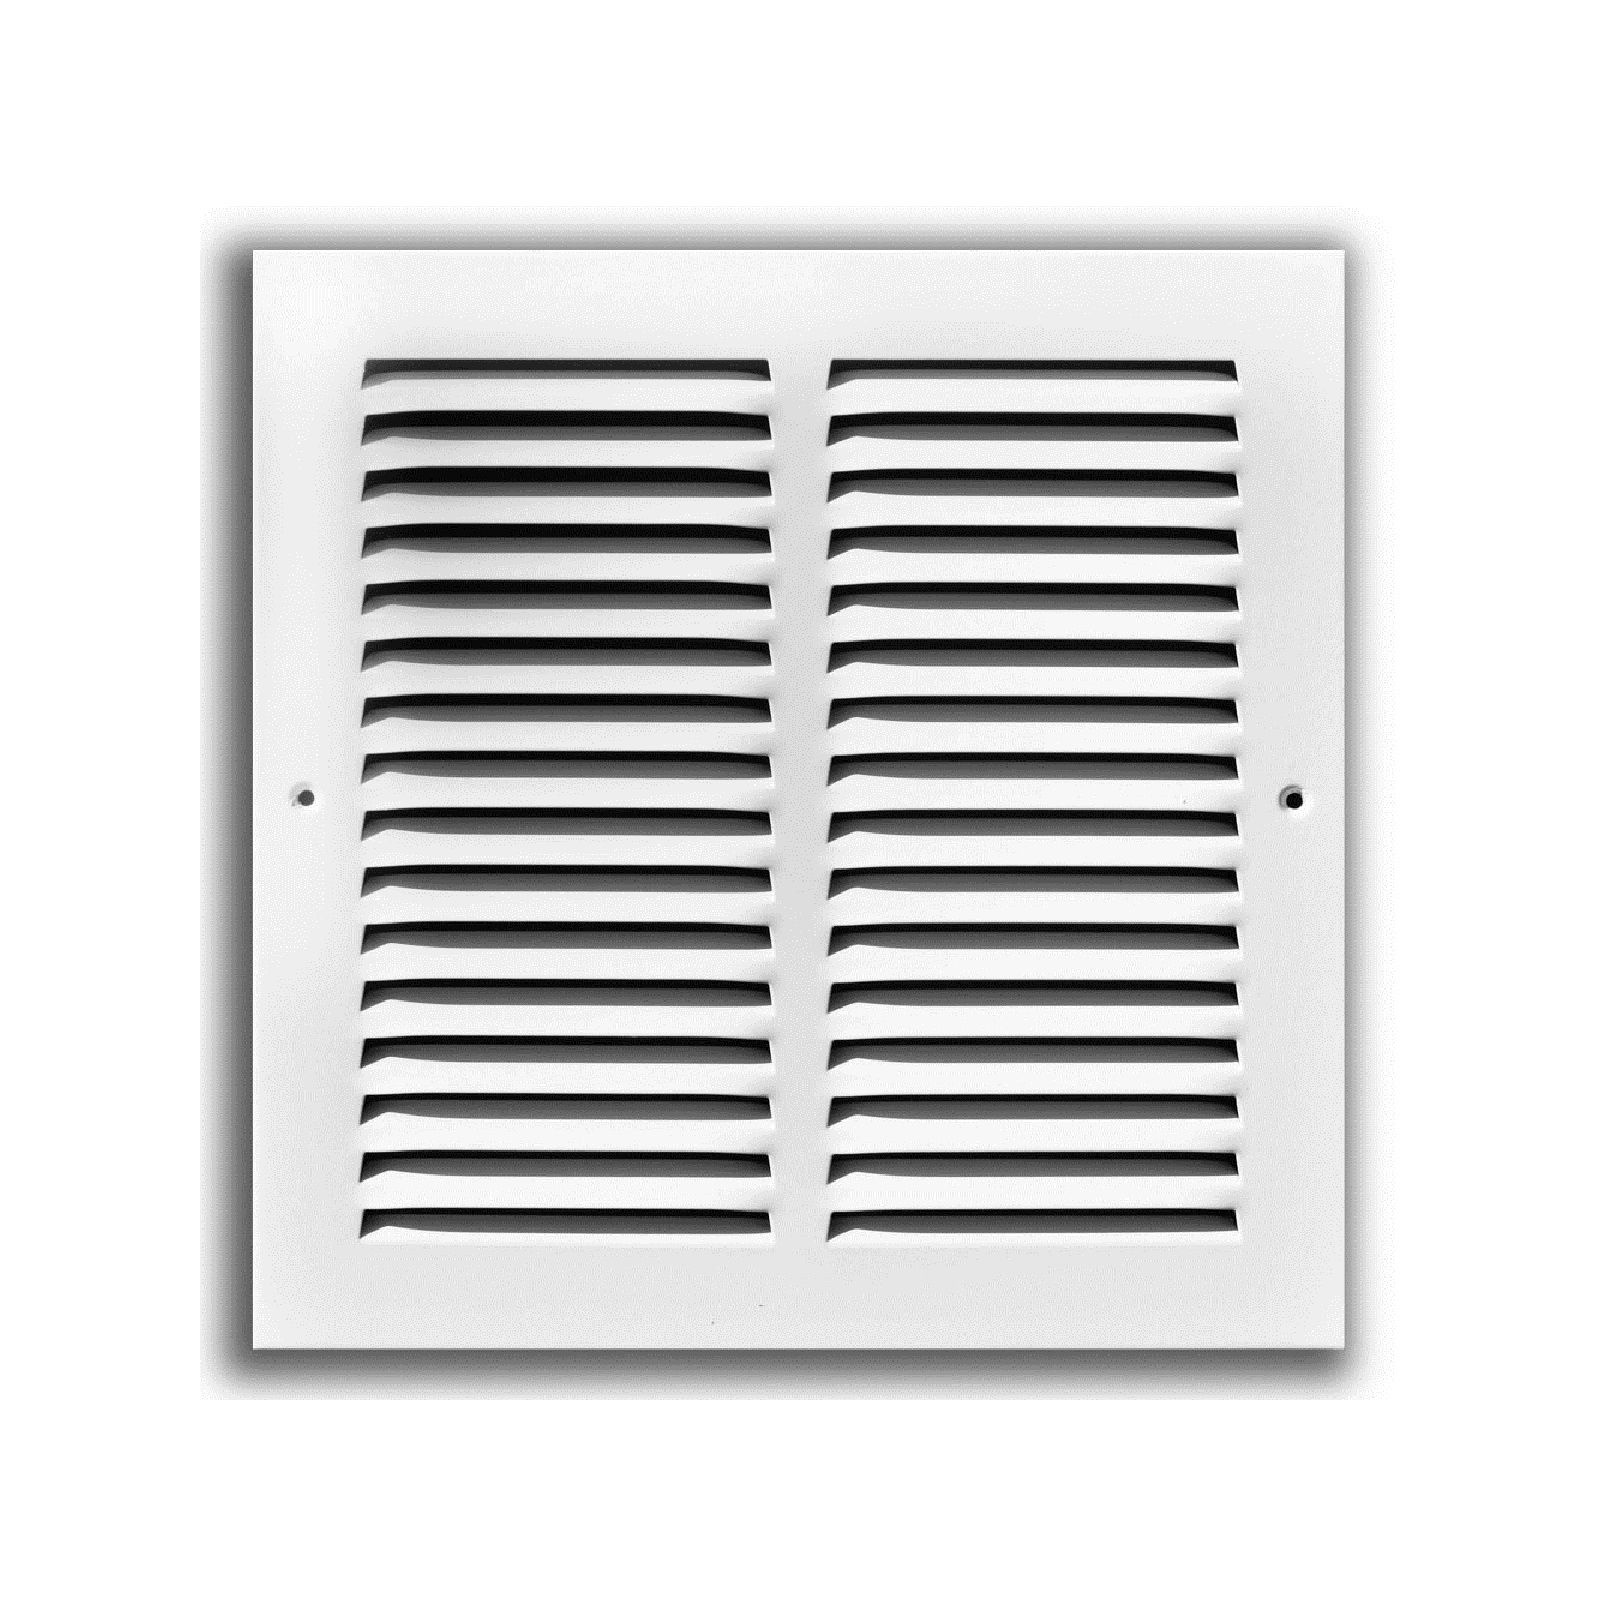 "TRUaire 170 16X08 - Steel Return Air Grille - 1/2"" Spaced Fin, White, 16"" X 08"""